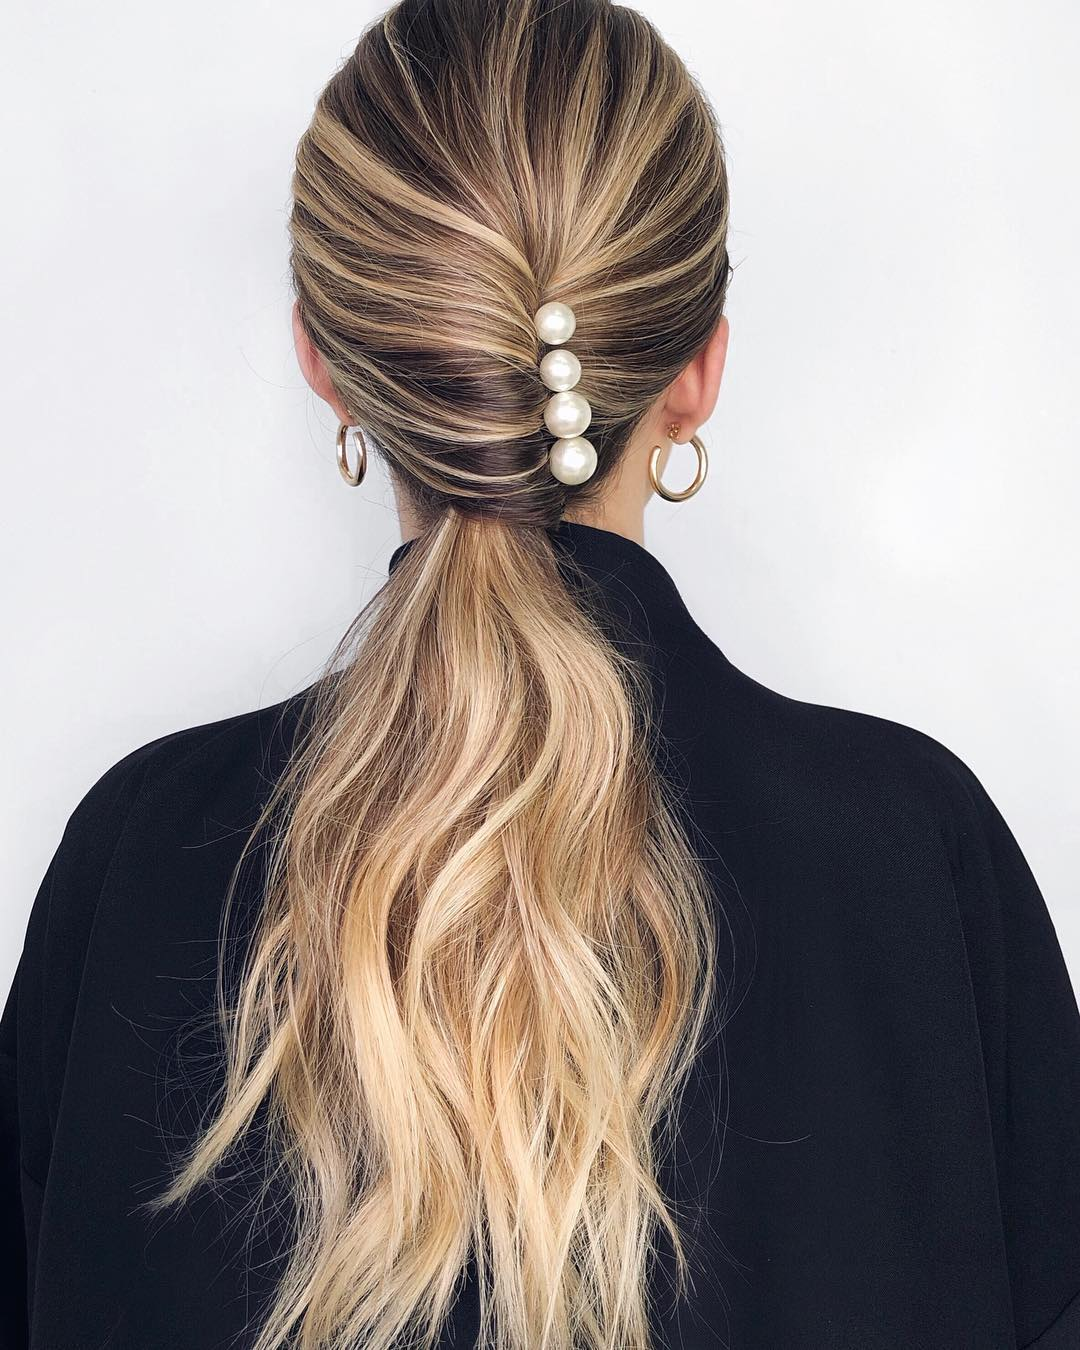 25 Incredibly Cool Pearl-Adorned Hair Accessories